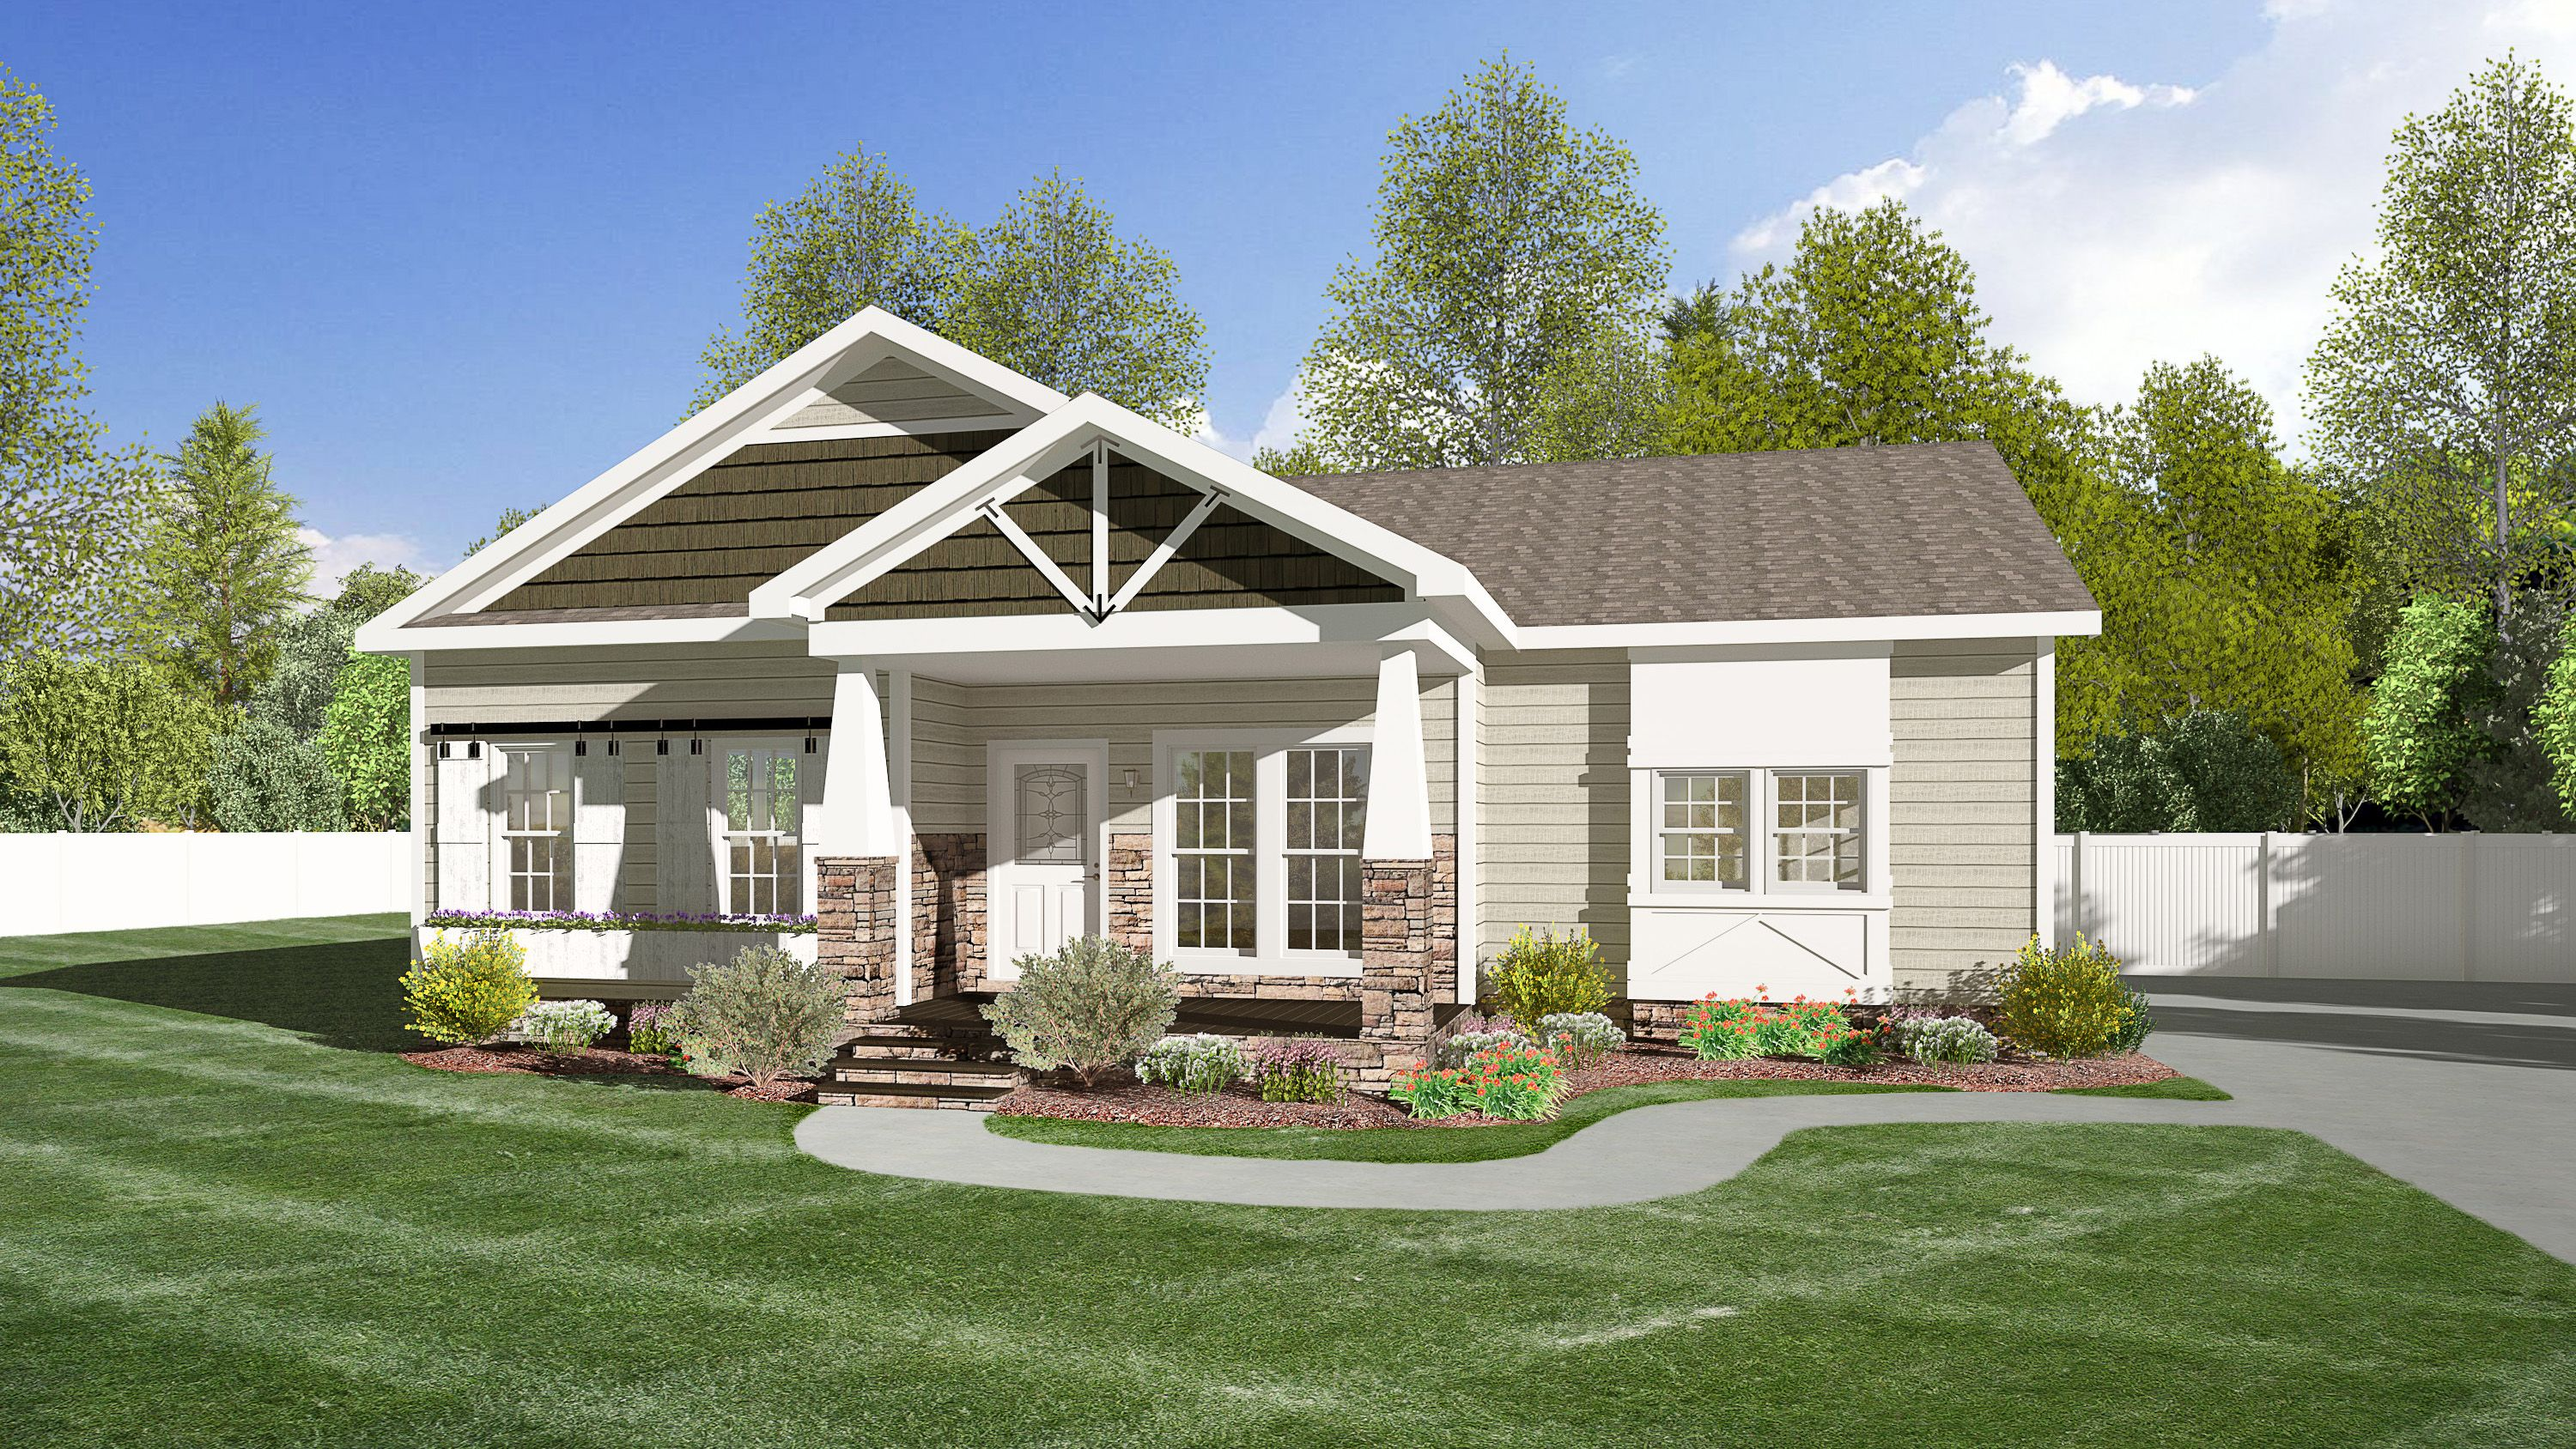 Since 1956 Clayton Has Been Providing Affordable Quality Homes For All Lifestyles Come Discover Our A Modular Homes Modular Home Plans Clayton Modular Homes